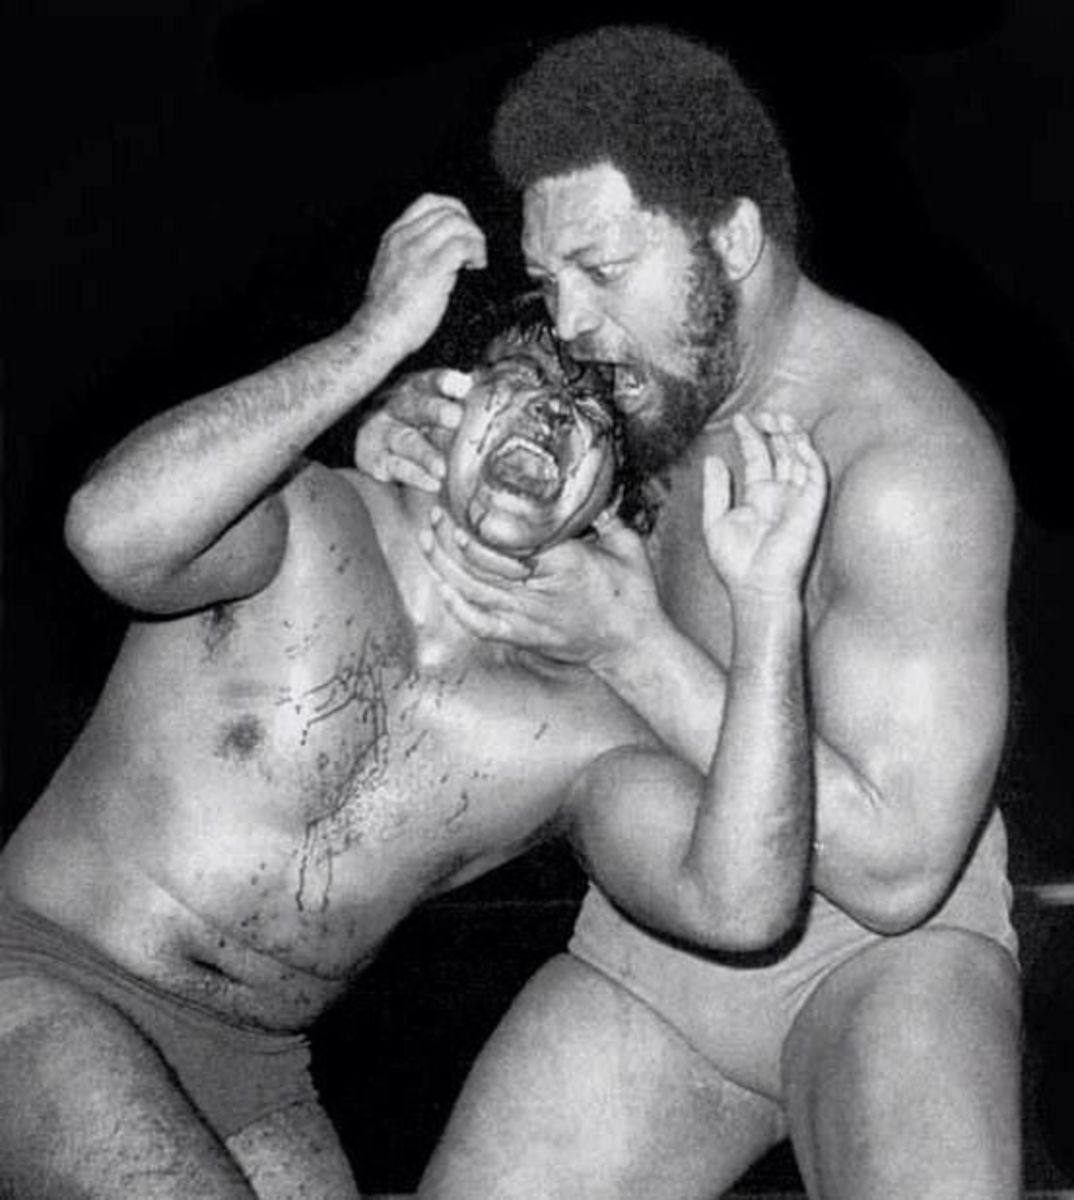 Chavo getting bitten by Ernie Ladd